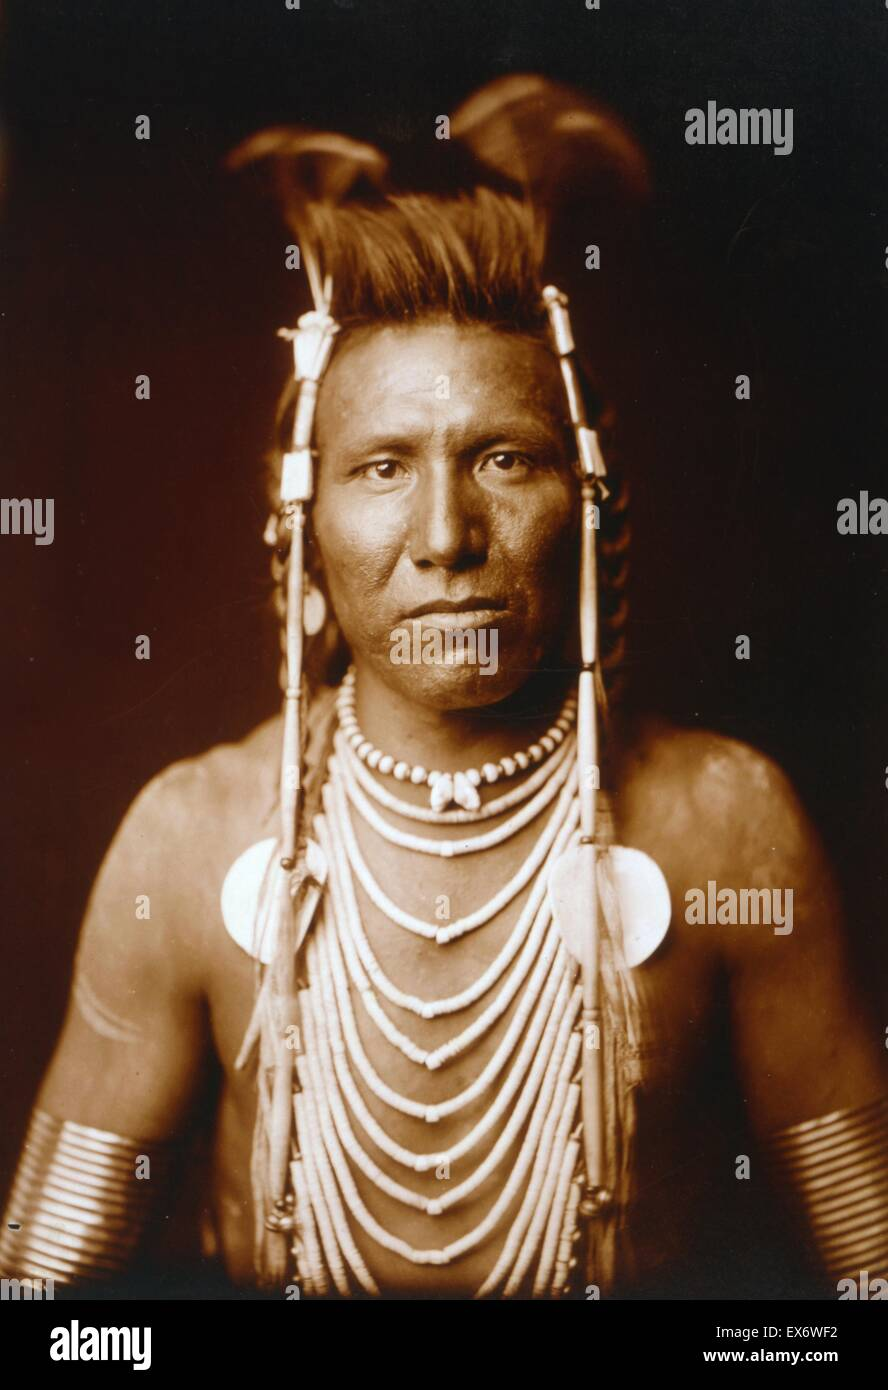 Photographic print of Ben Long Ear photographed by Edward Sheriff Curtis (1868-1952) American ethnologist and photographer - Stock Image